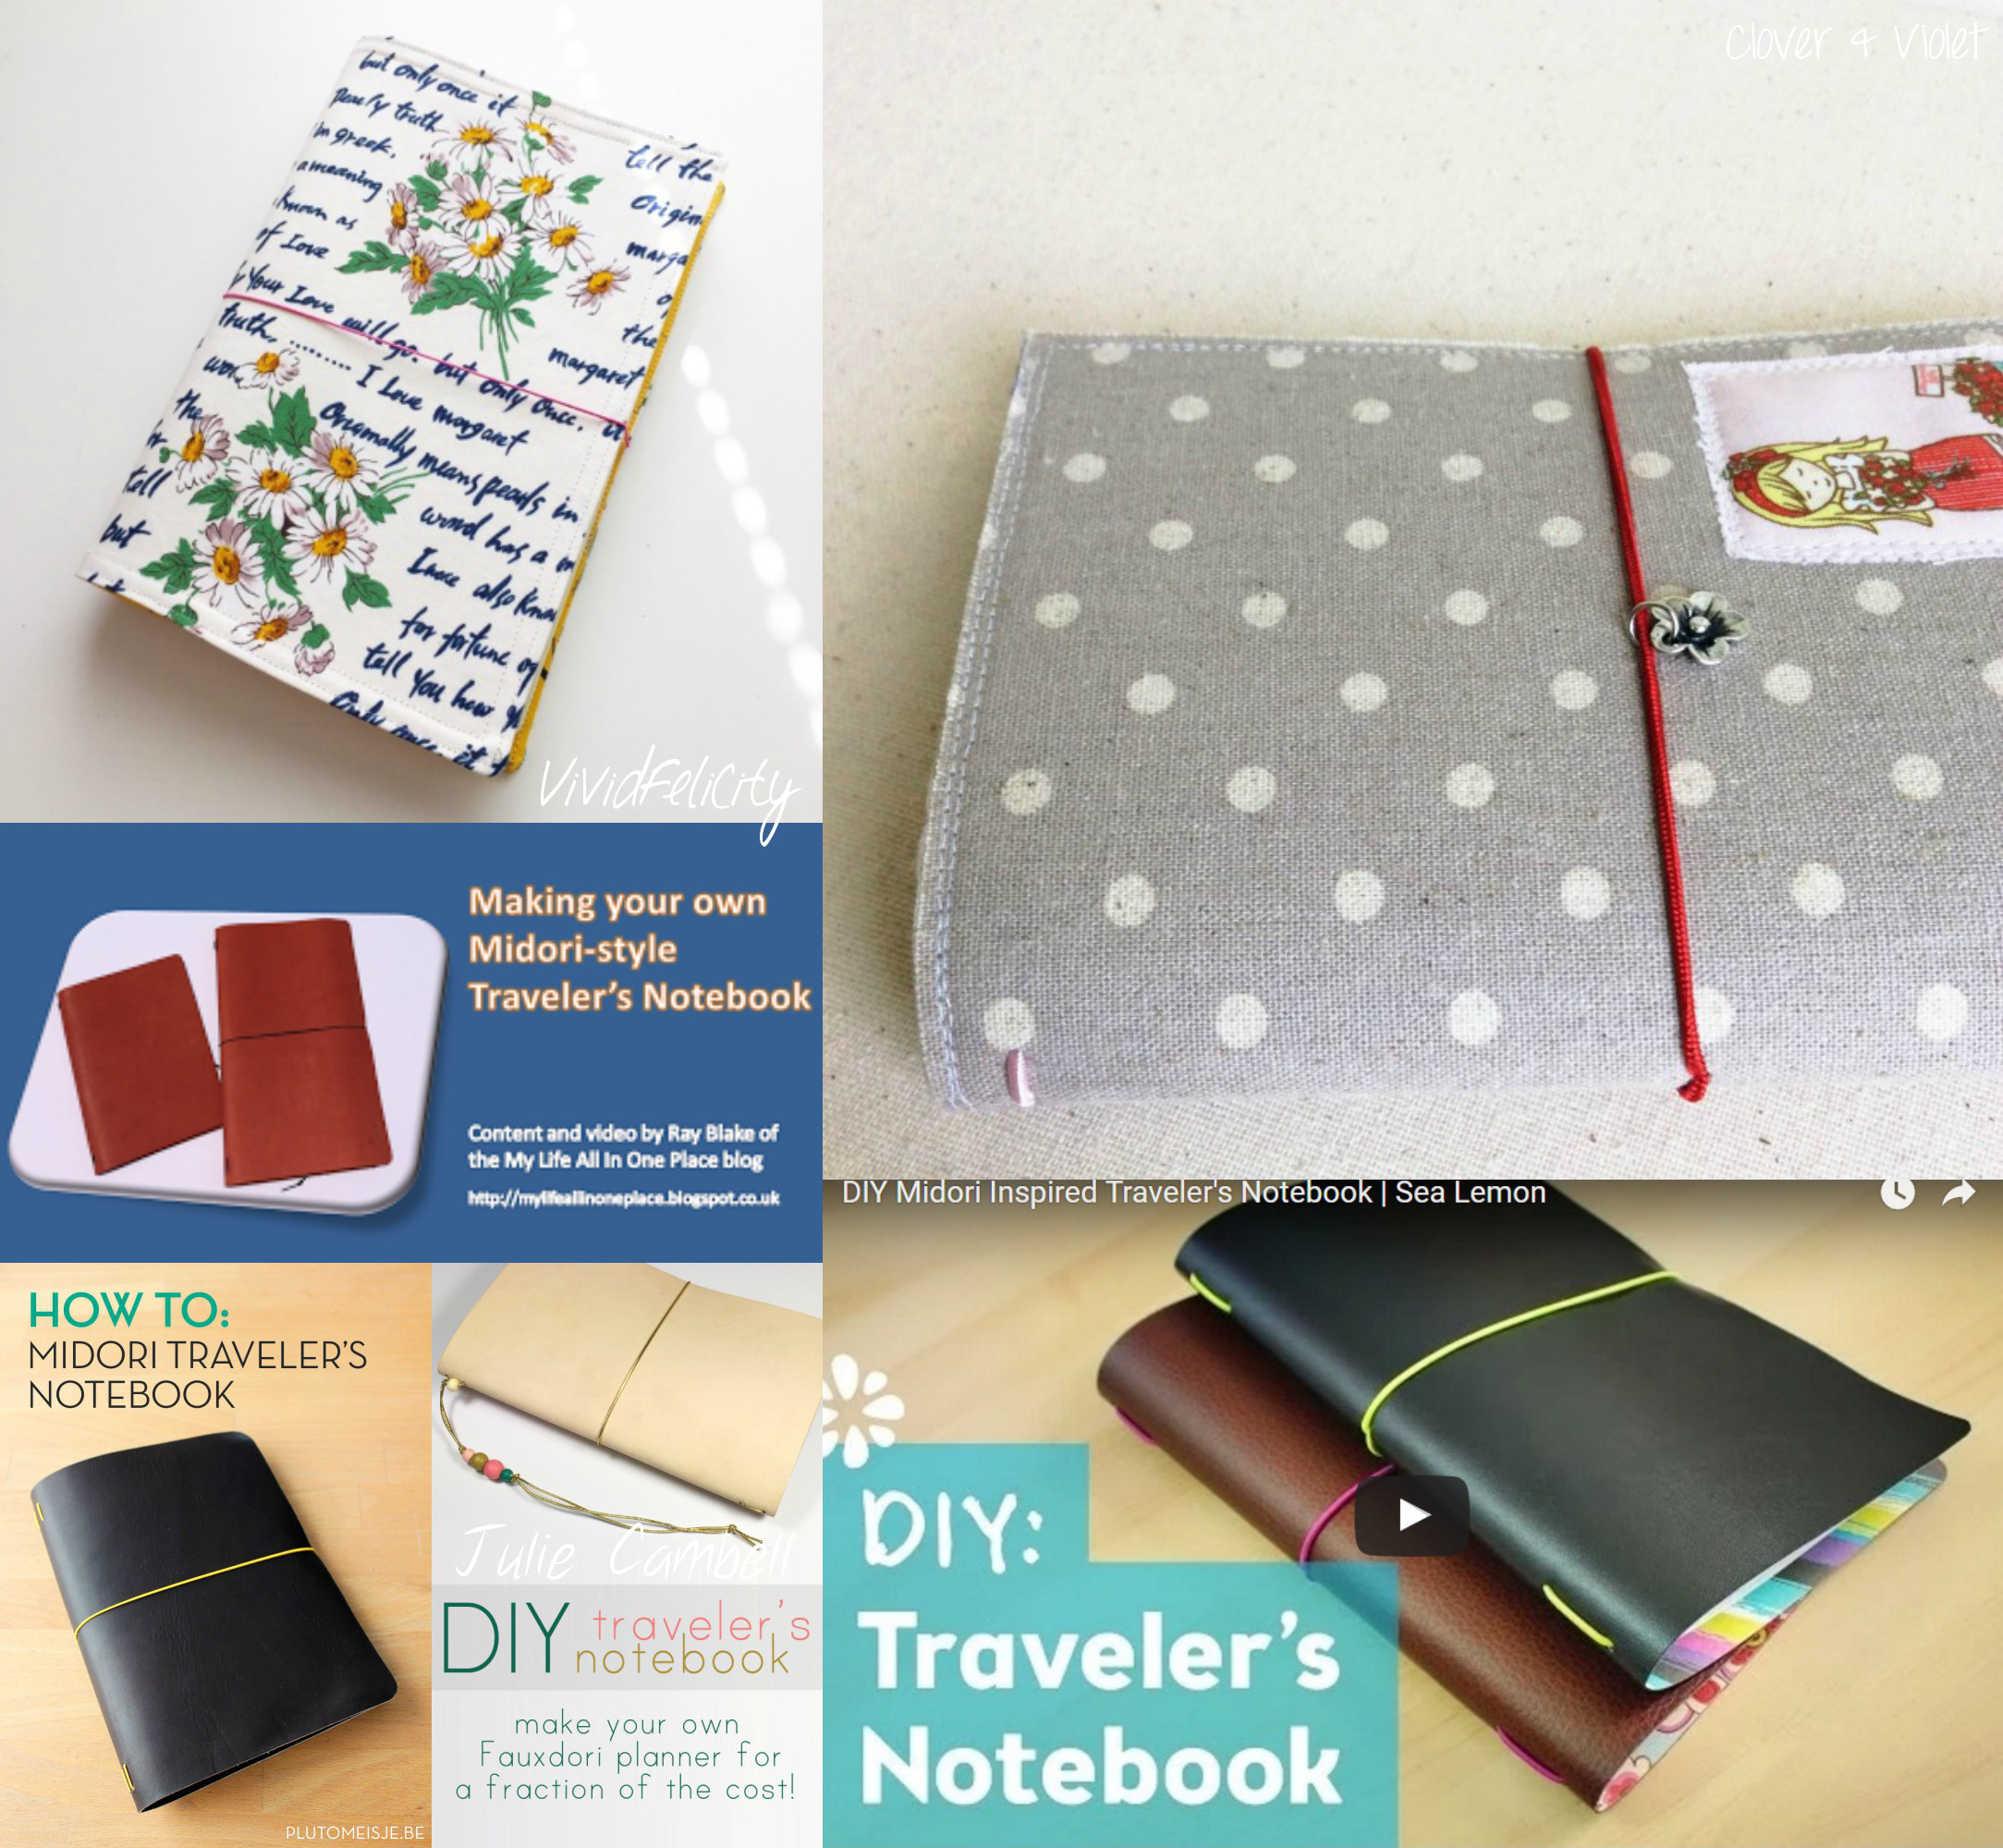 Diy Calendar Notebook : Diy midori traveler s notebook covers tutorials kitskorner